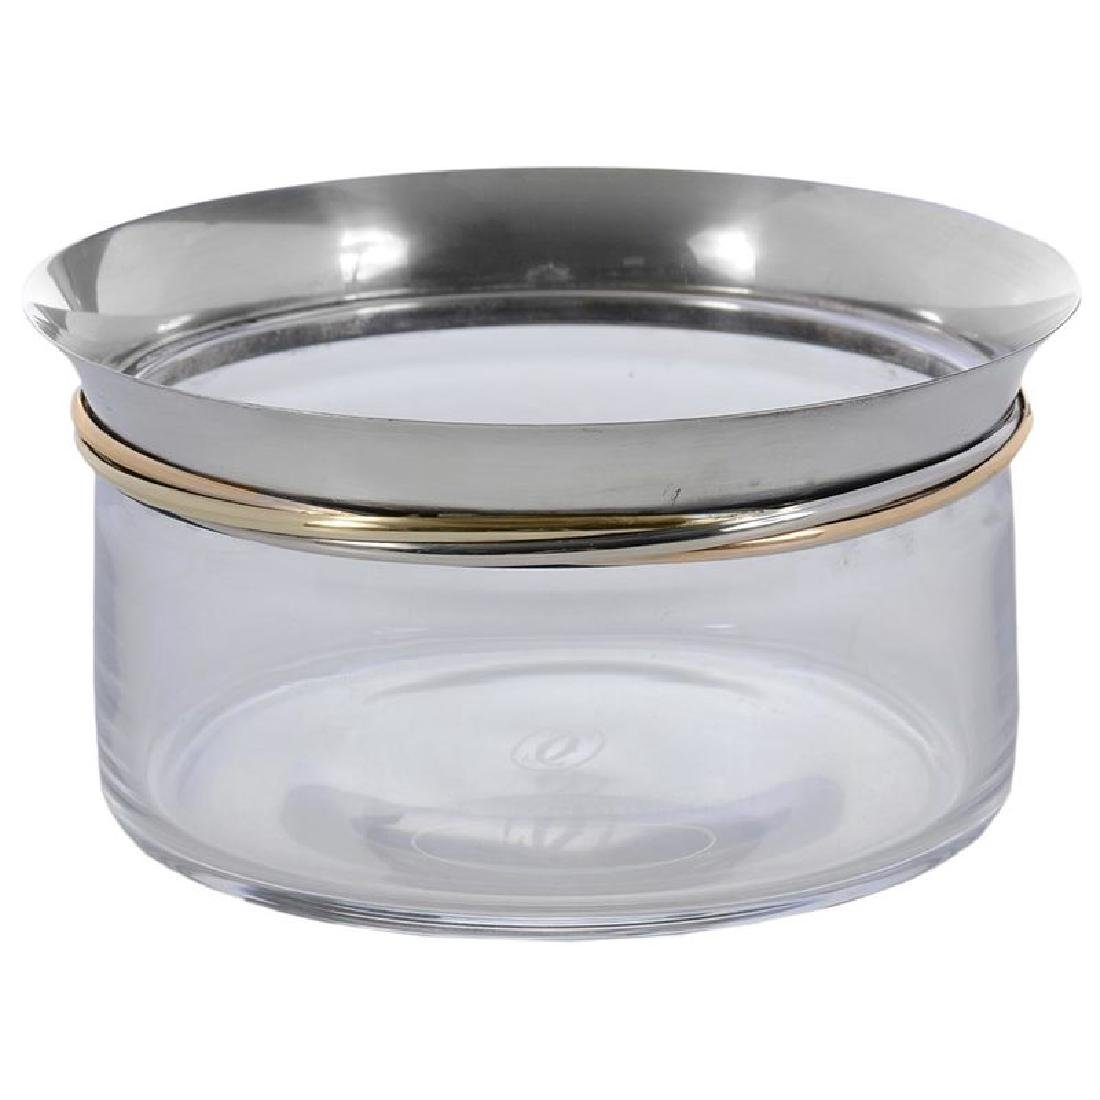 Cartier Glass and Silver Bowl